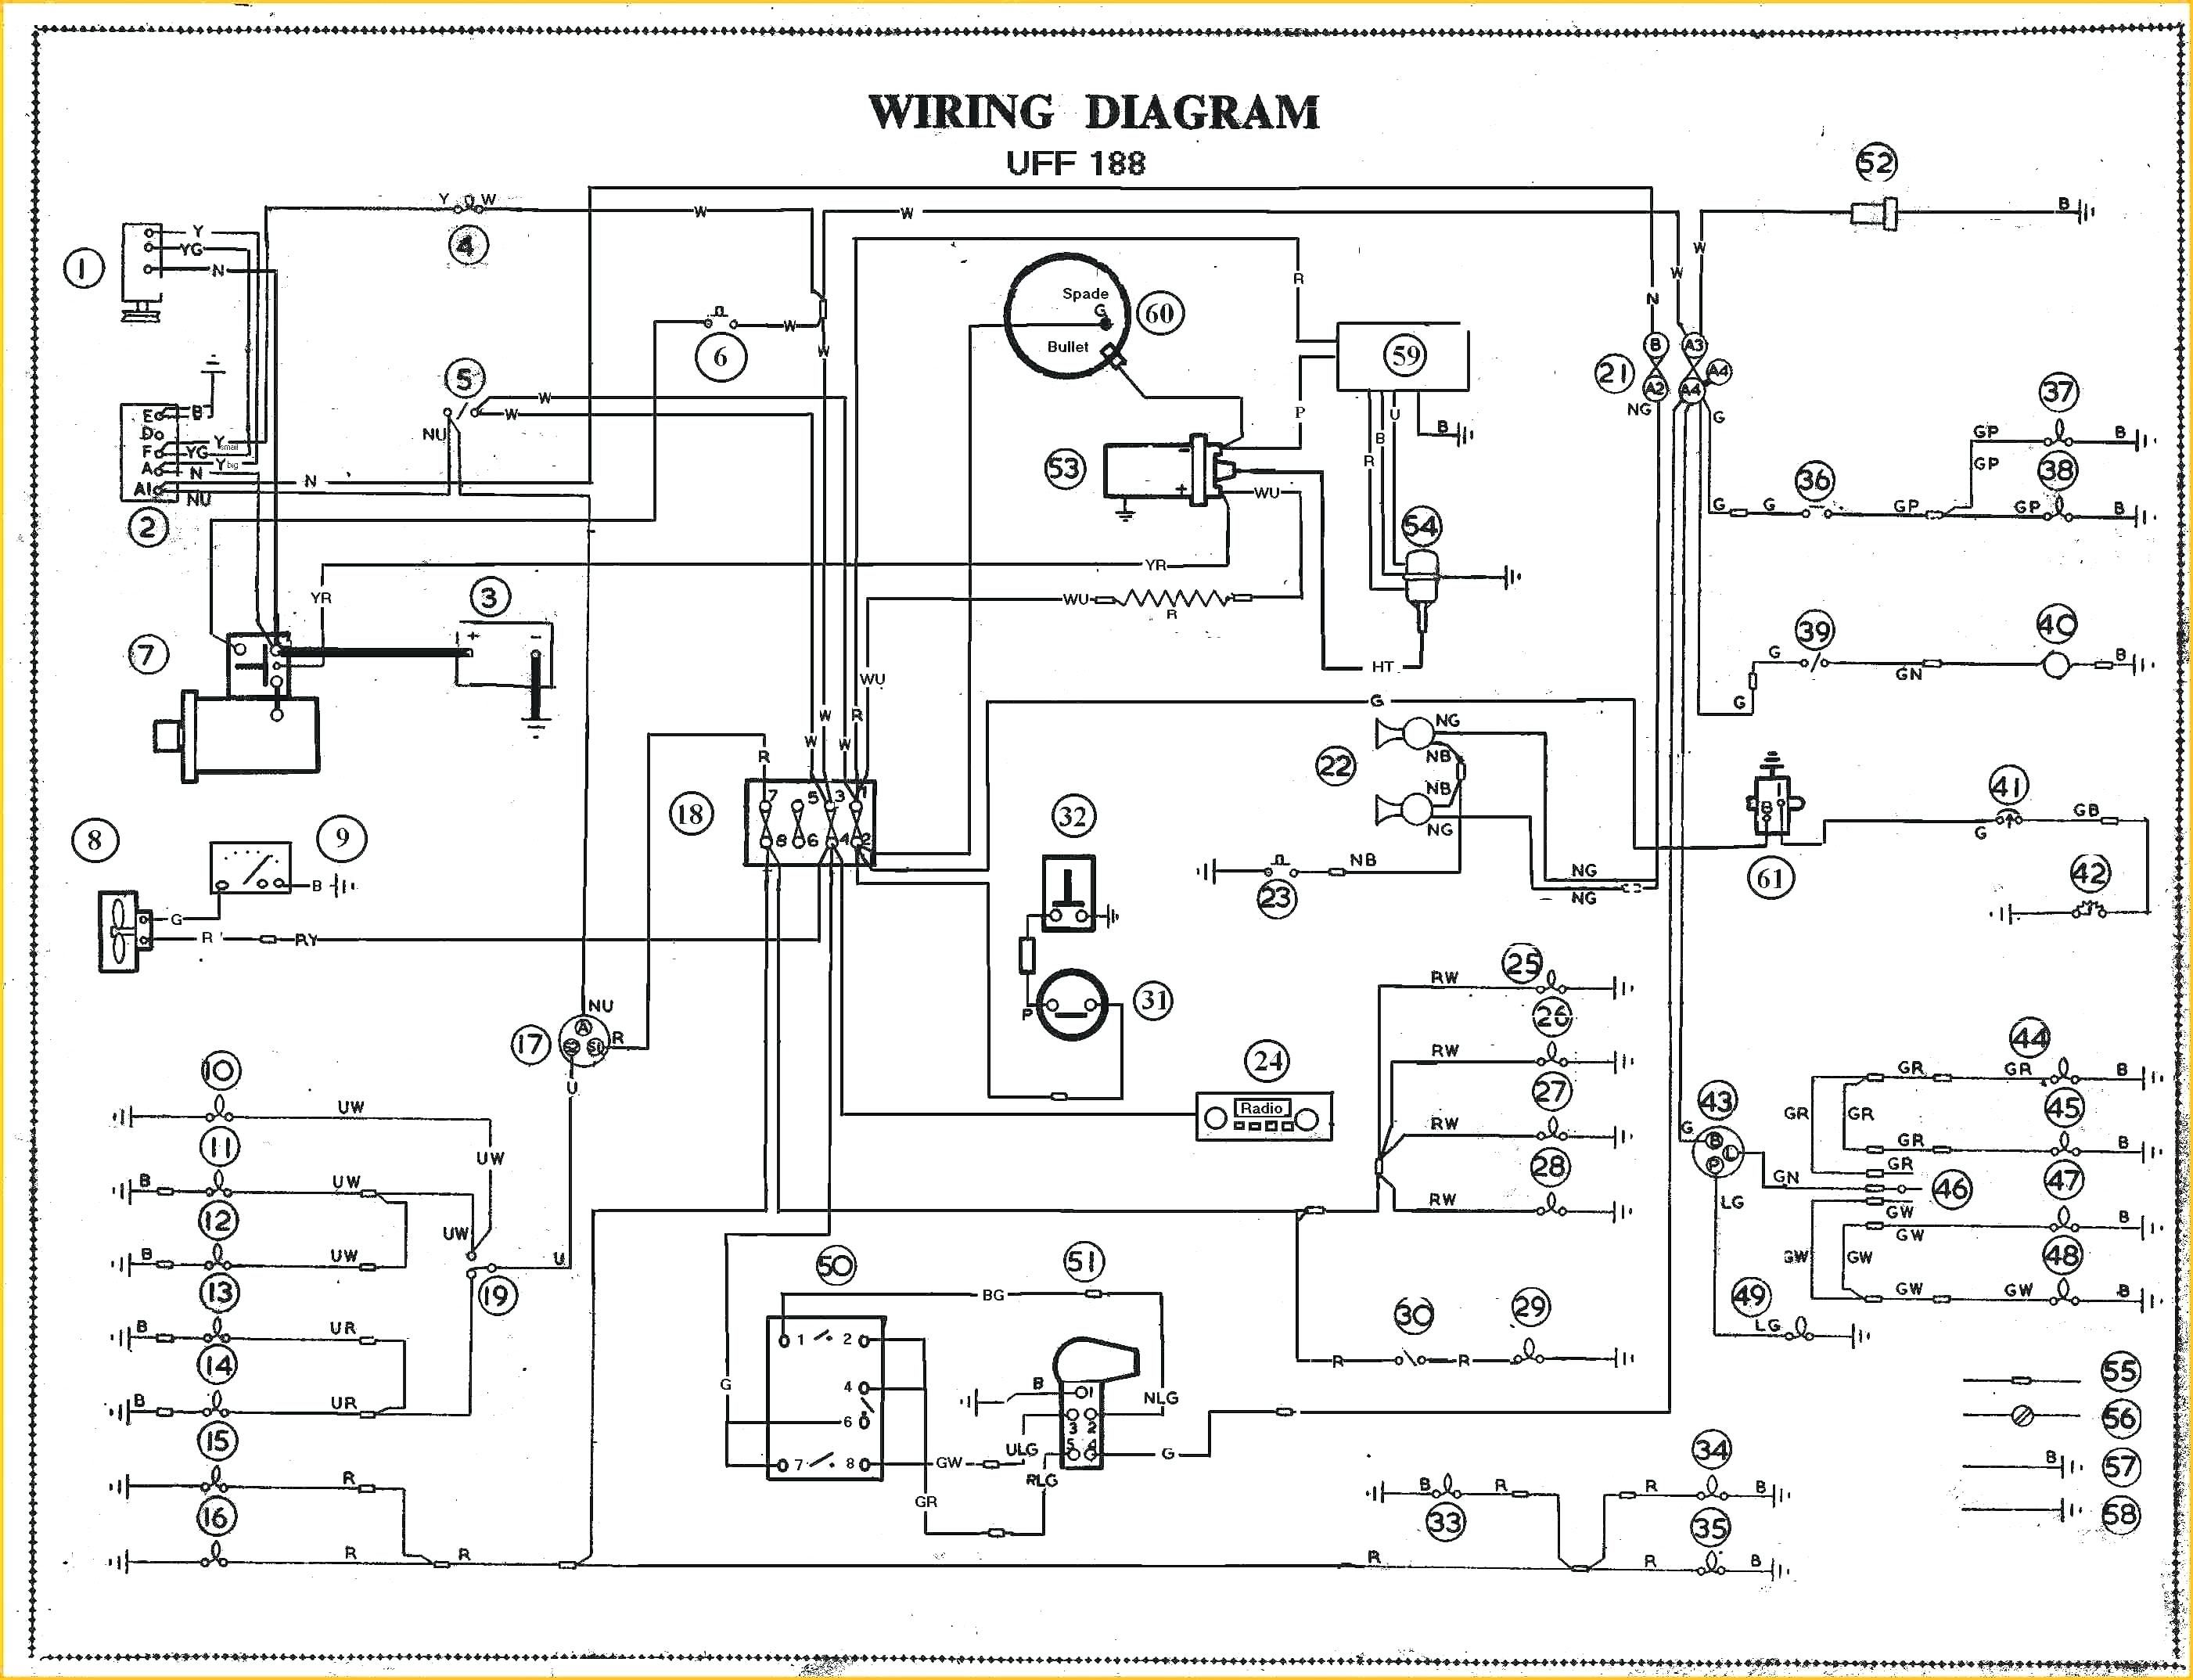 medium resolution of basic hvac wiring diagrams schematics at diagram pdf hvacr in 2019 wiring diagram of car pdf